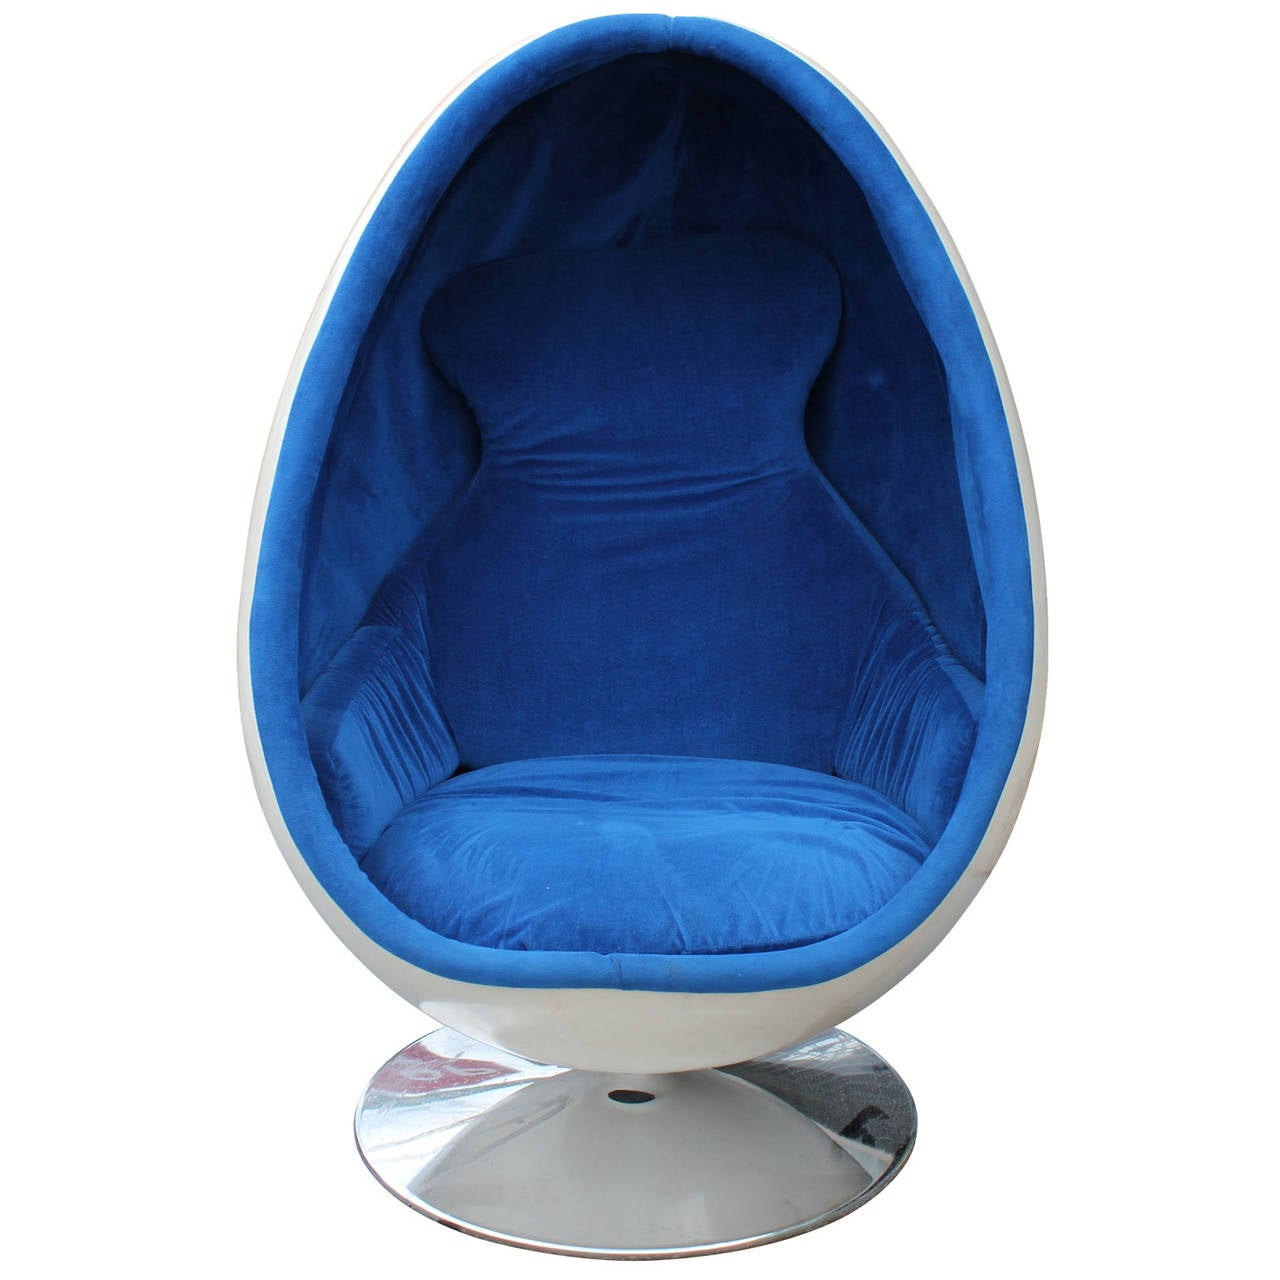 blue egg chair swing indoor ovalia by thor larsen image 2